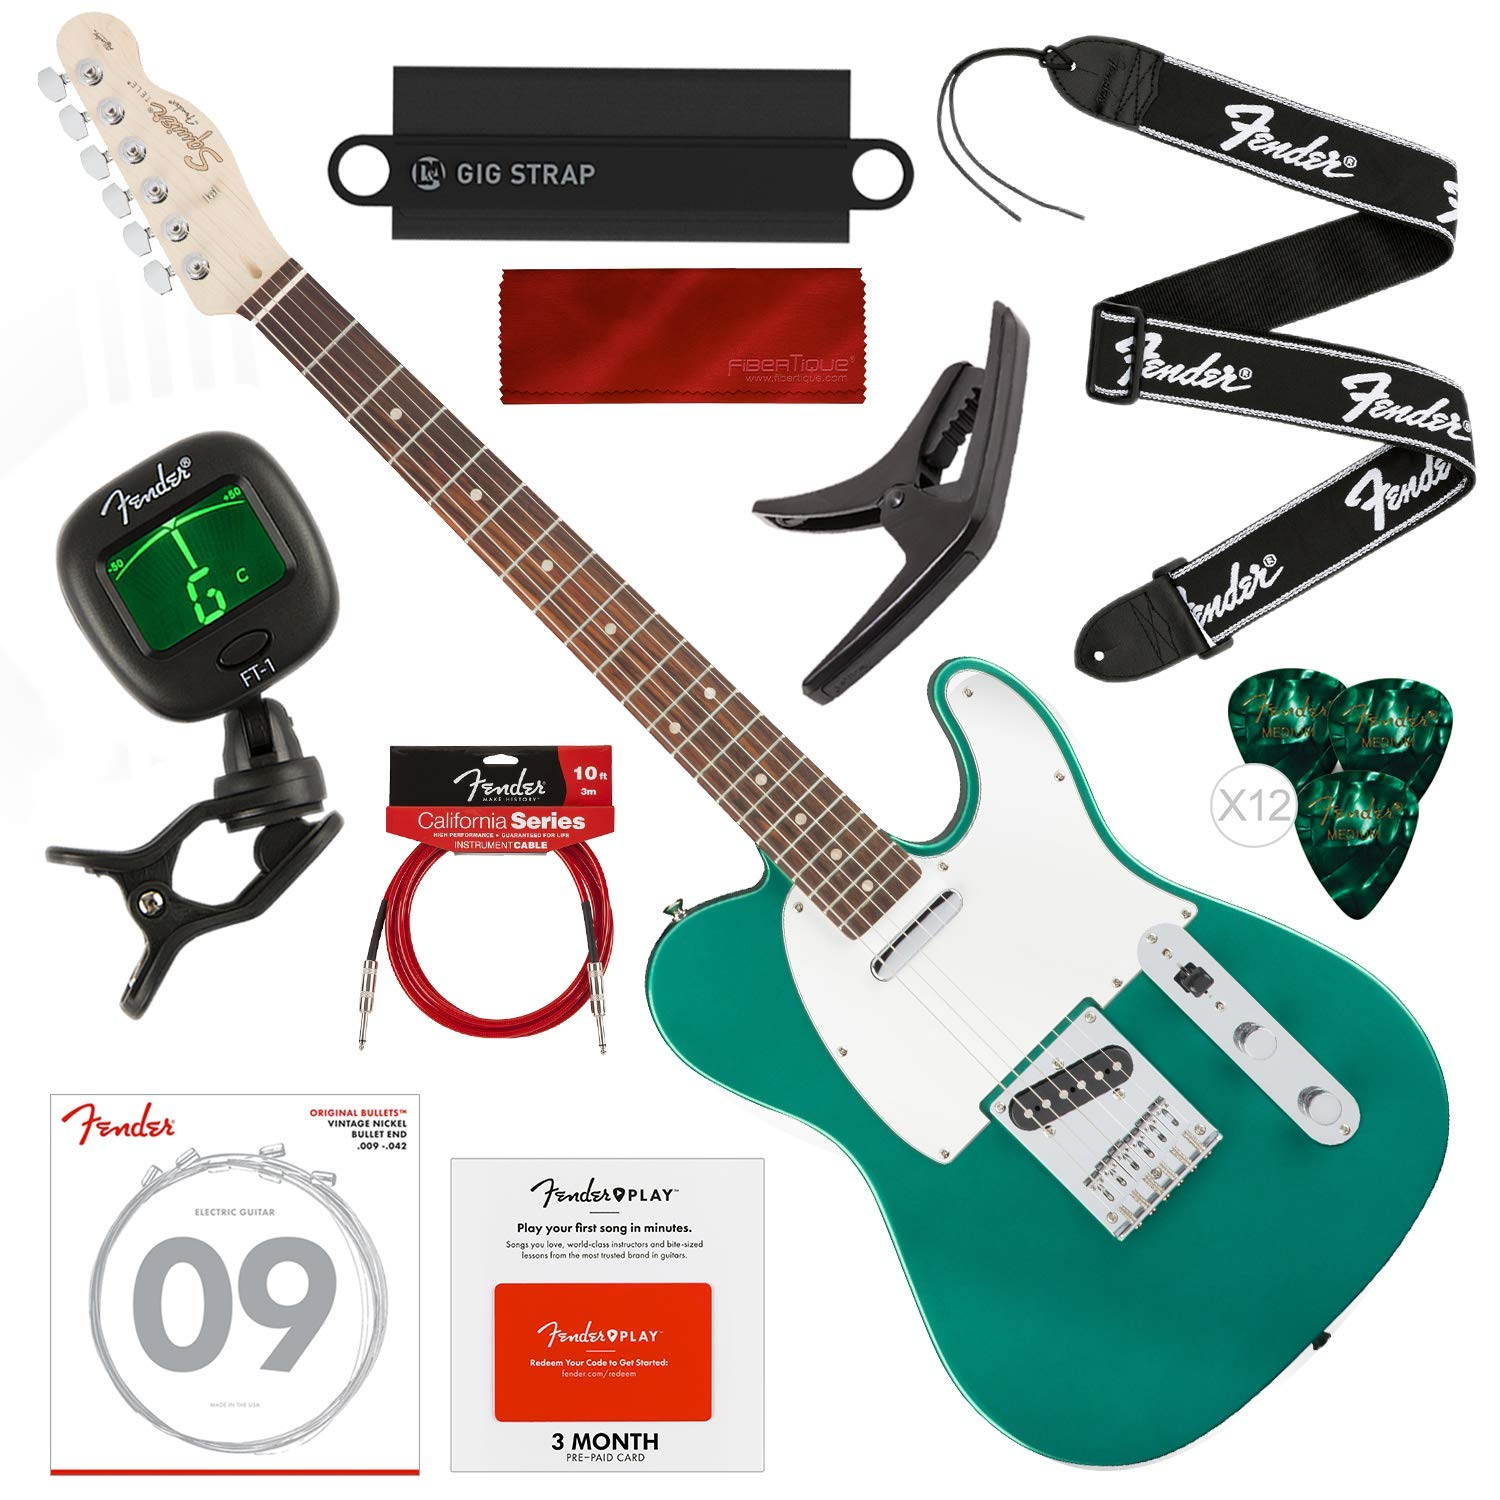 Cheap Squier by Fender Affinity Series Telecaster Beginner Electric Guitar Race Green with Fender Play Pre-Paid Card Tuner Strap Strings Picks Cable & Deluxe Starter Pack Bundle Black Friday & Cyber Monday 2019